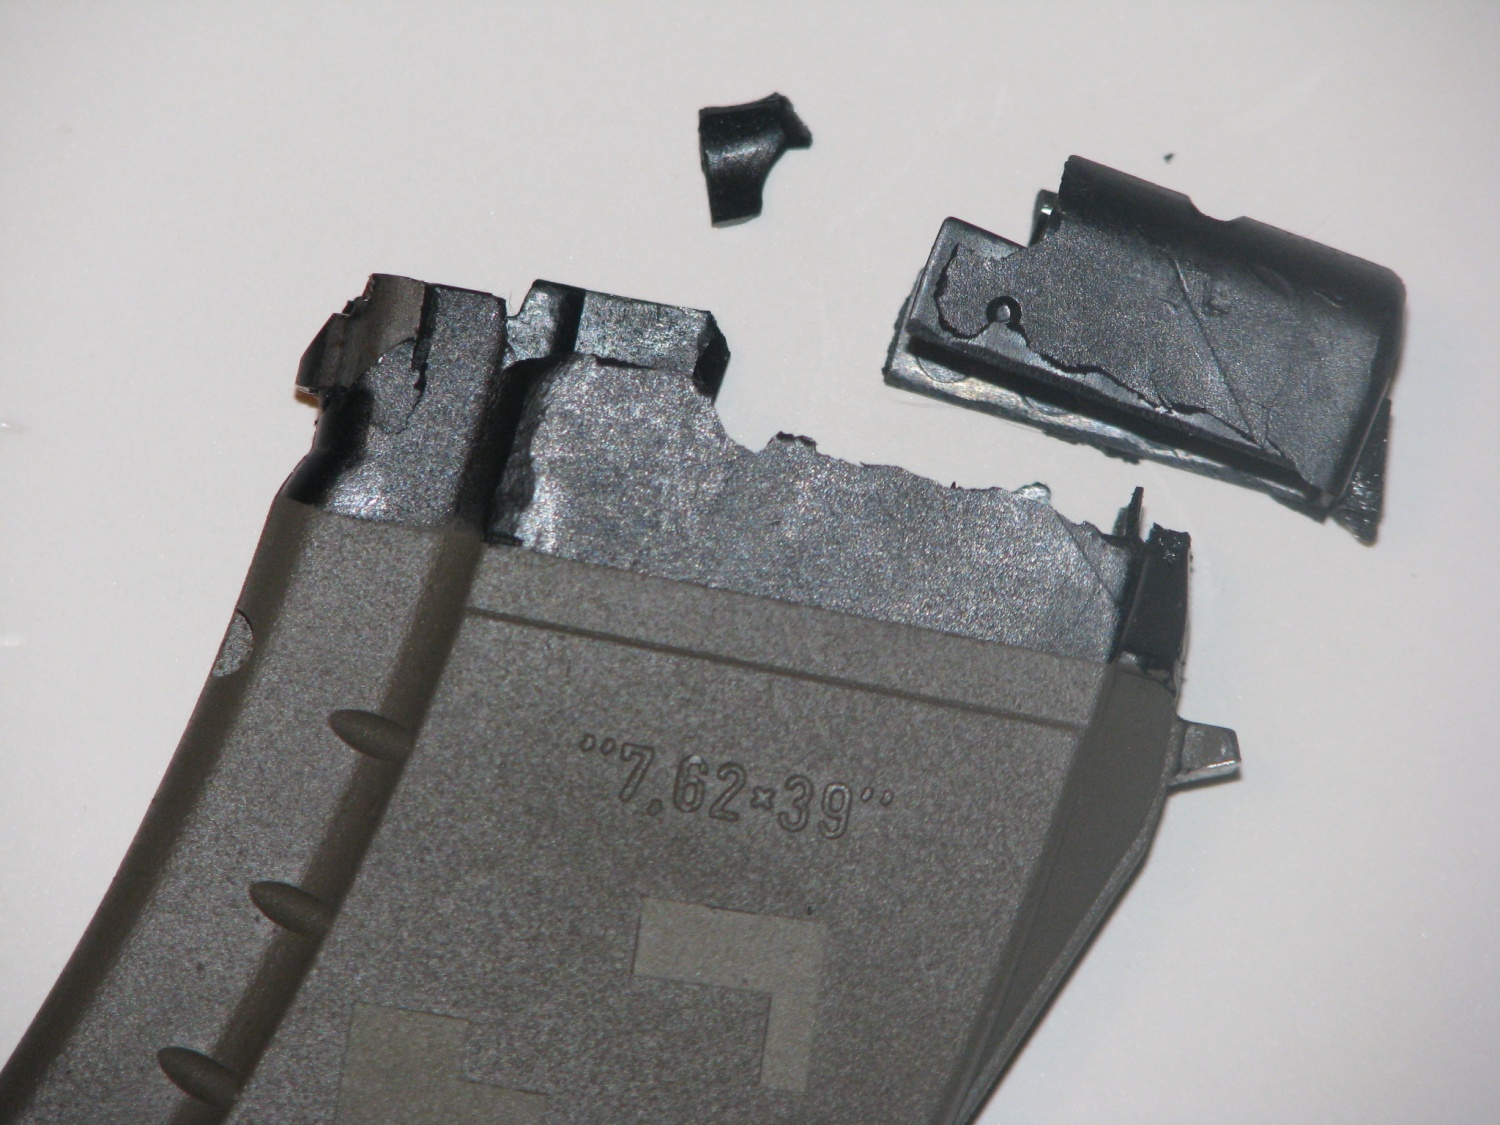 Explosive Failure Of Polymer Ak Magazines From Sitting